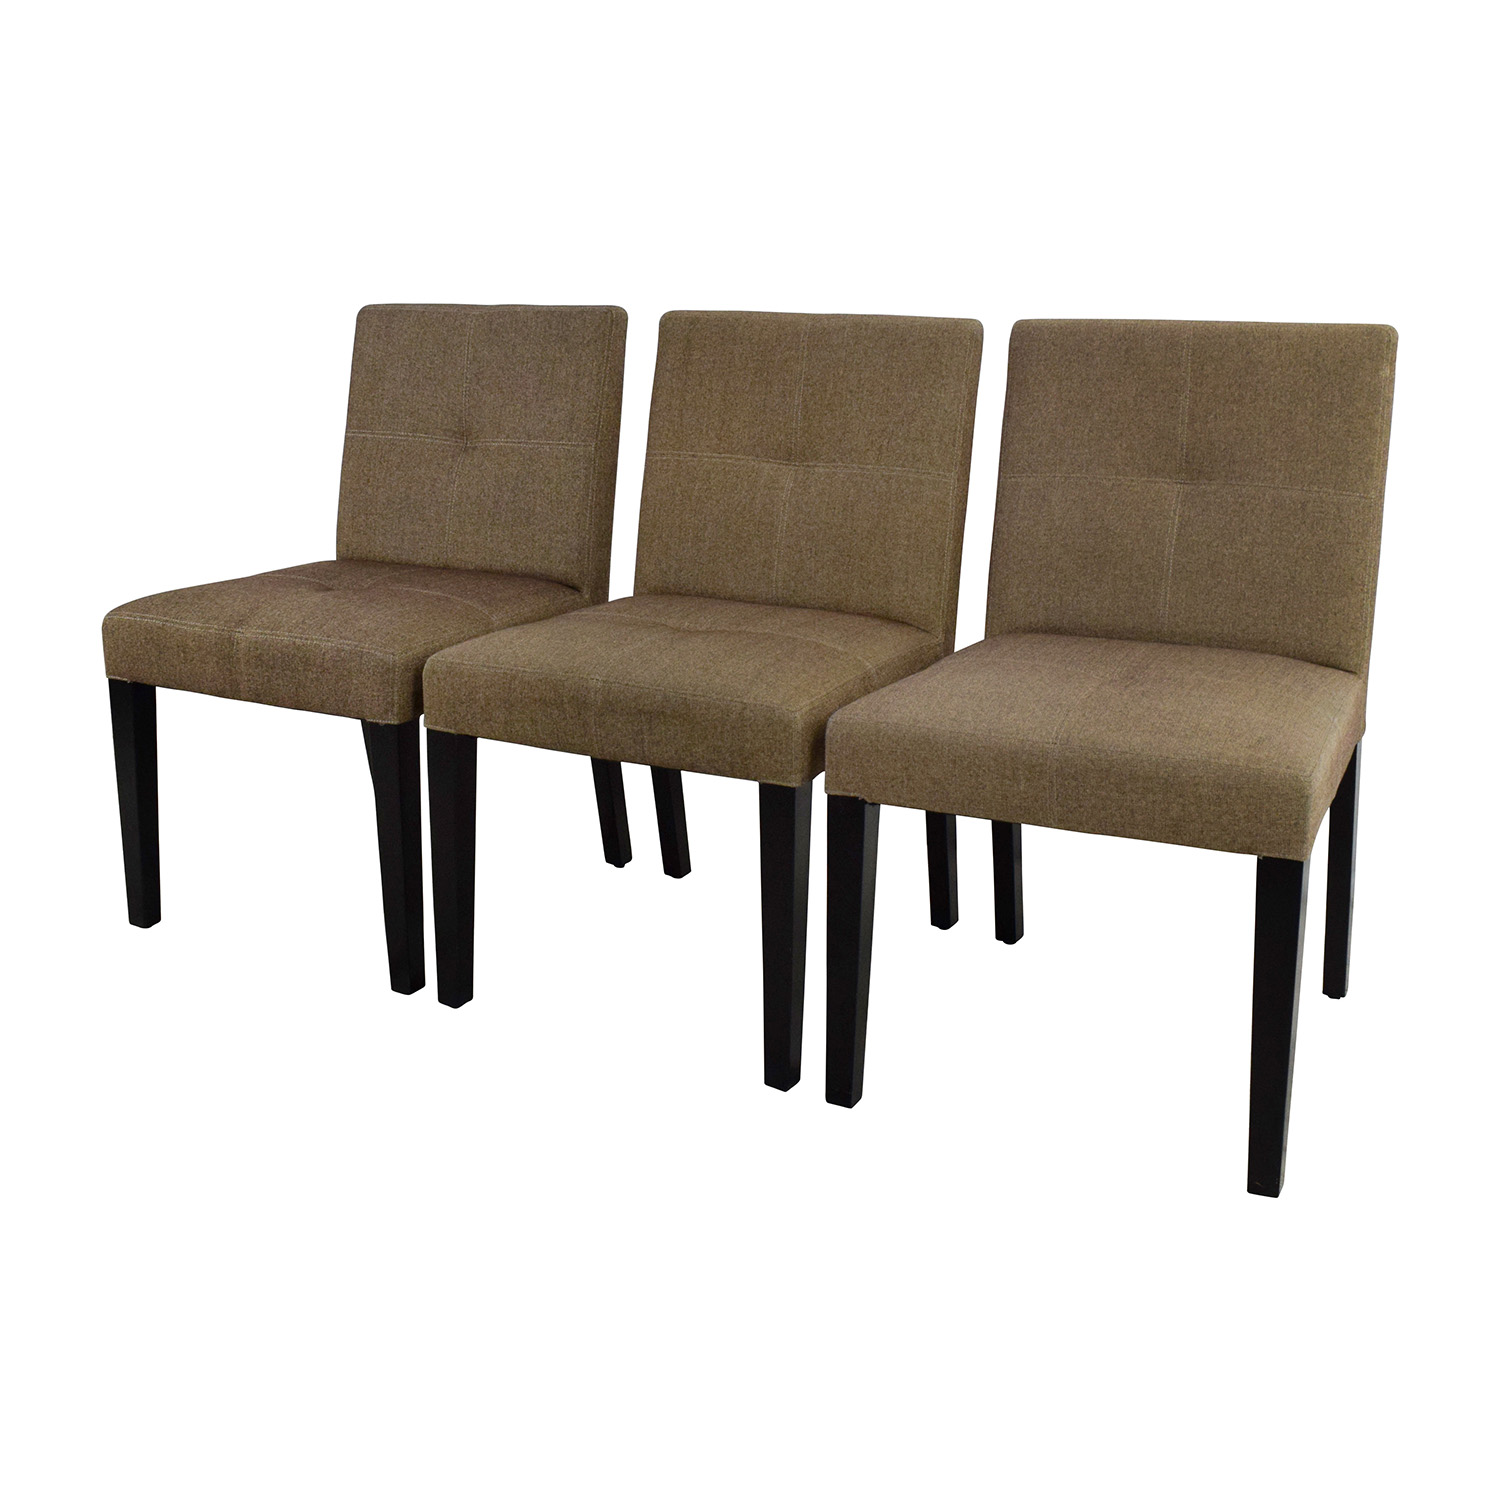 ... Crate And Barrel Crate U0026 Barrel Epoch Chairs Dining Chairs ...